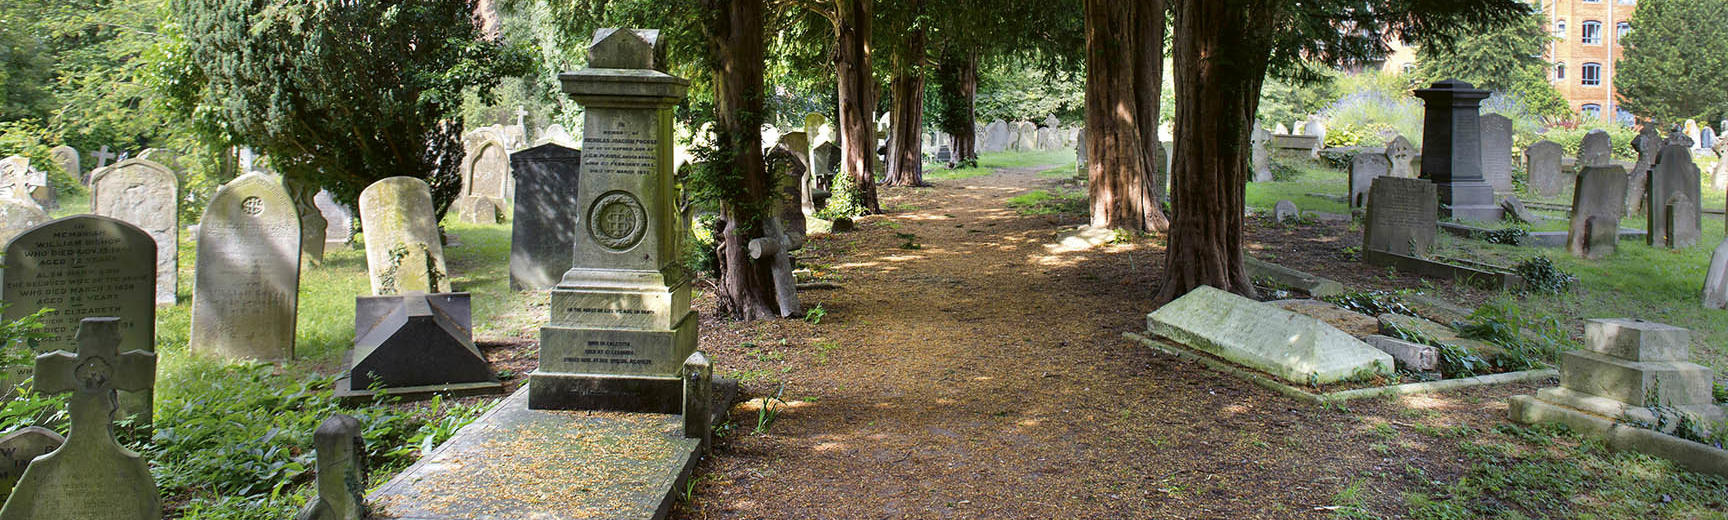 A photograph of a cemetery - there is a path in the middle with gravestones on either side